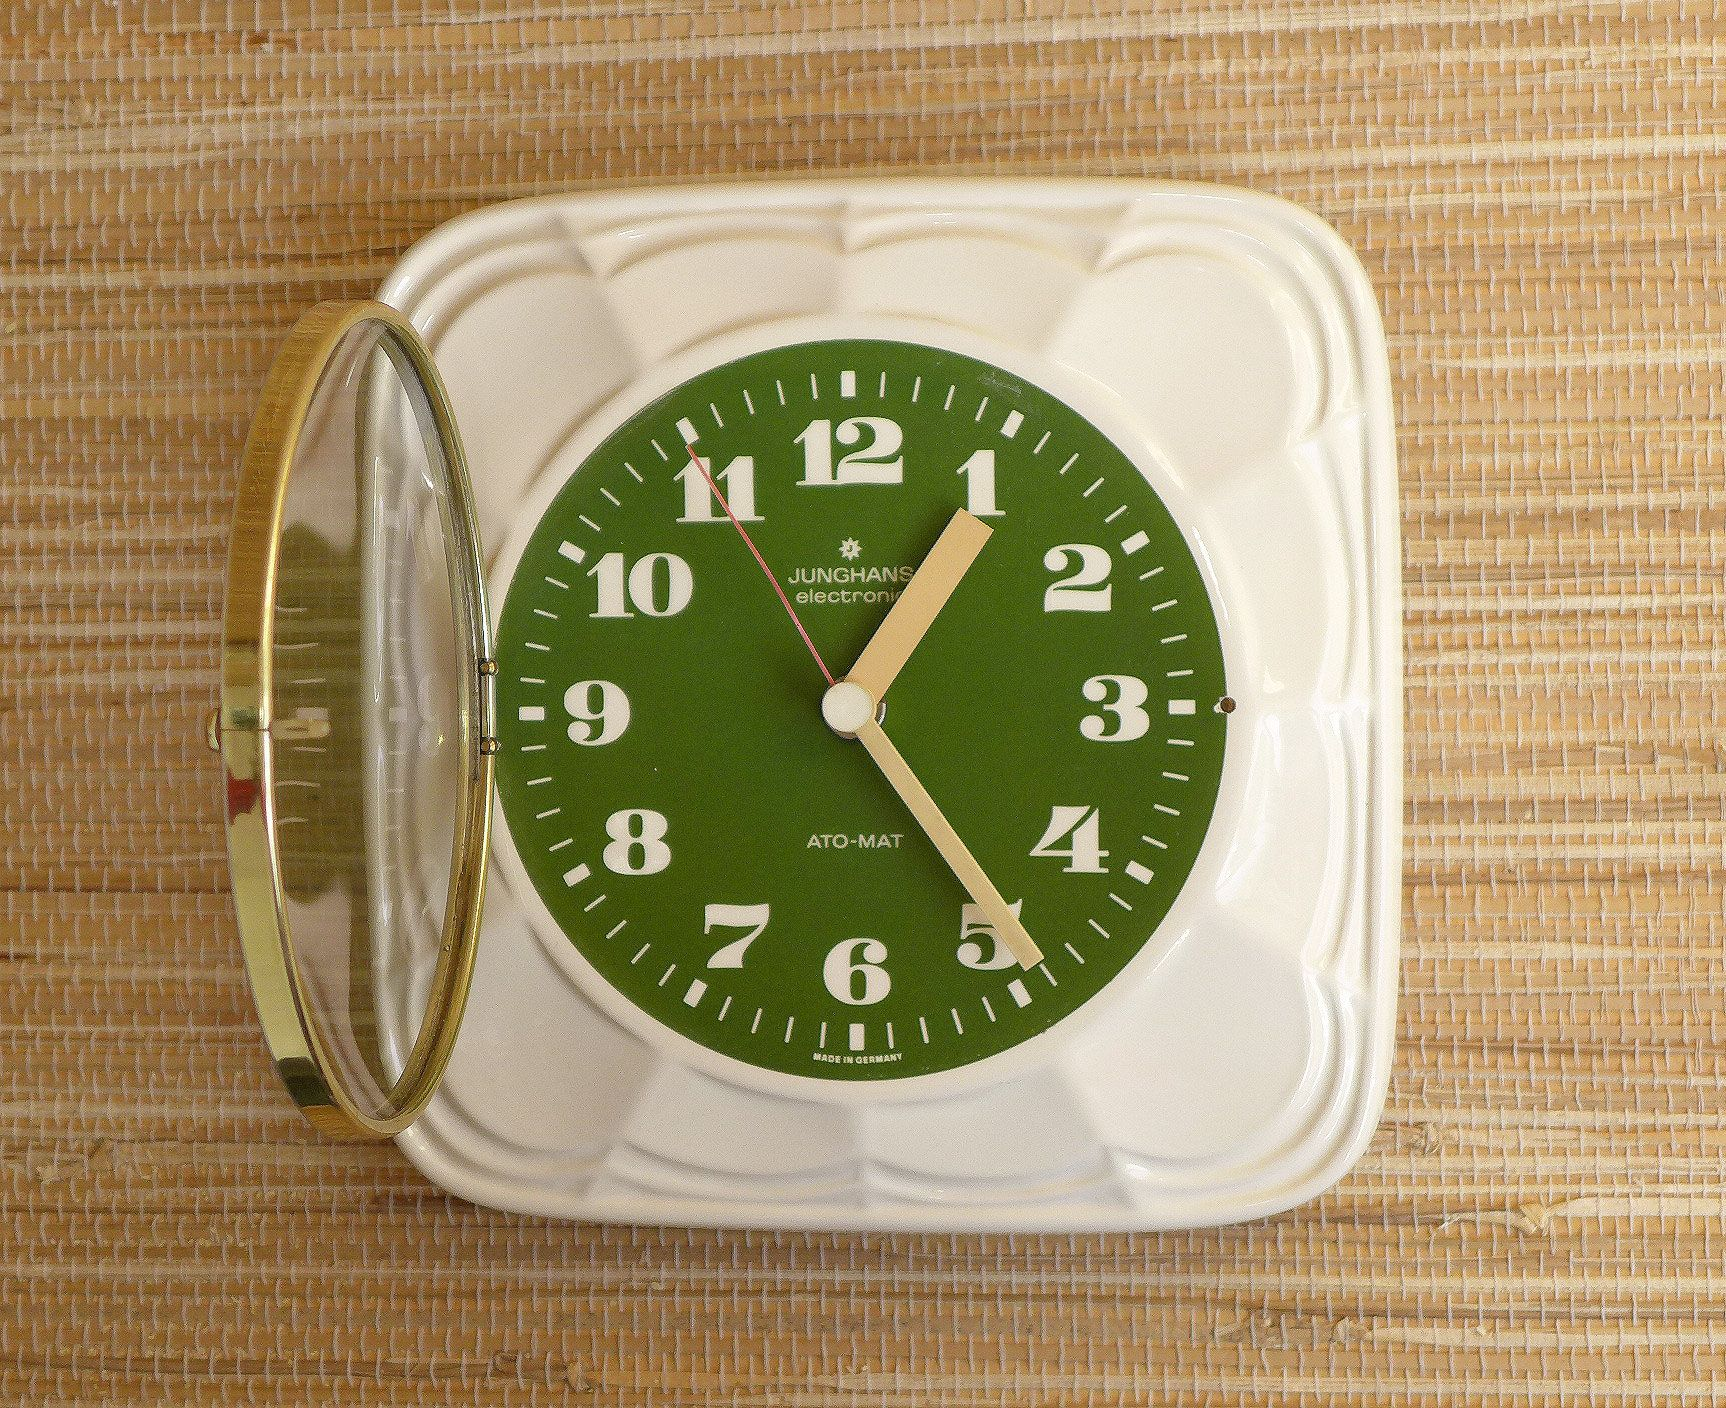 Vintage Kitchen Clock Wall Clock Junghans Made In Germany Ceramic Porcelain Vintage Atomic Mid Century Modern 1960s 1970ss Retro Modern Design Und Produkte